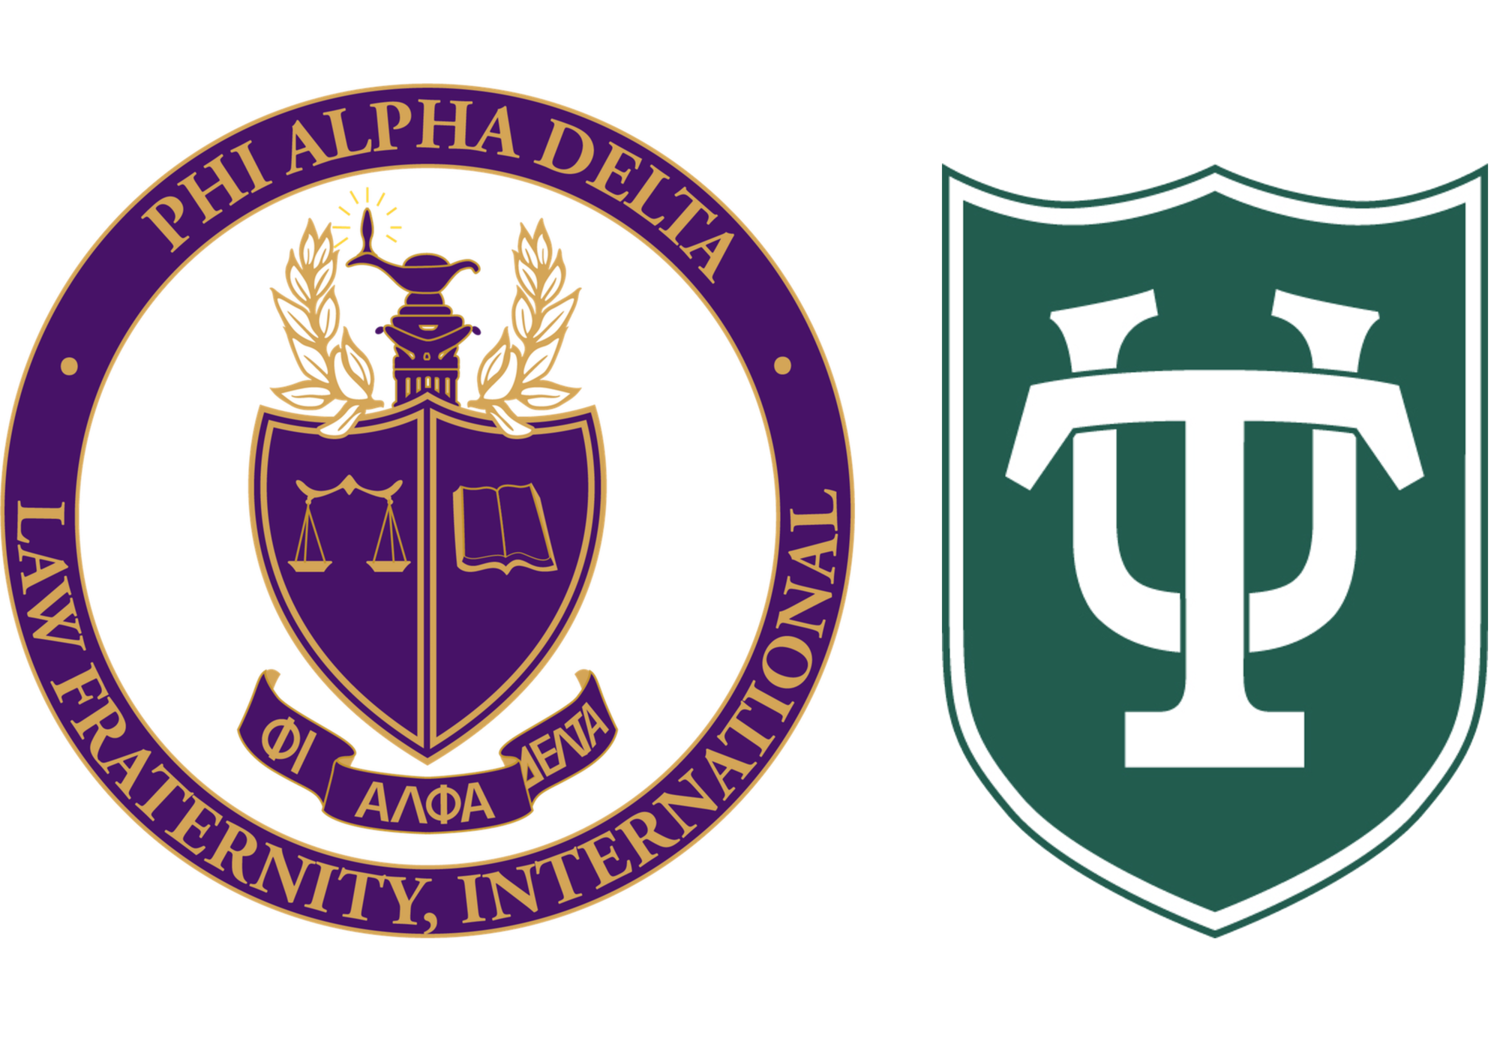 Phi Alpha Delta Tulane University Pre-Law Chapter